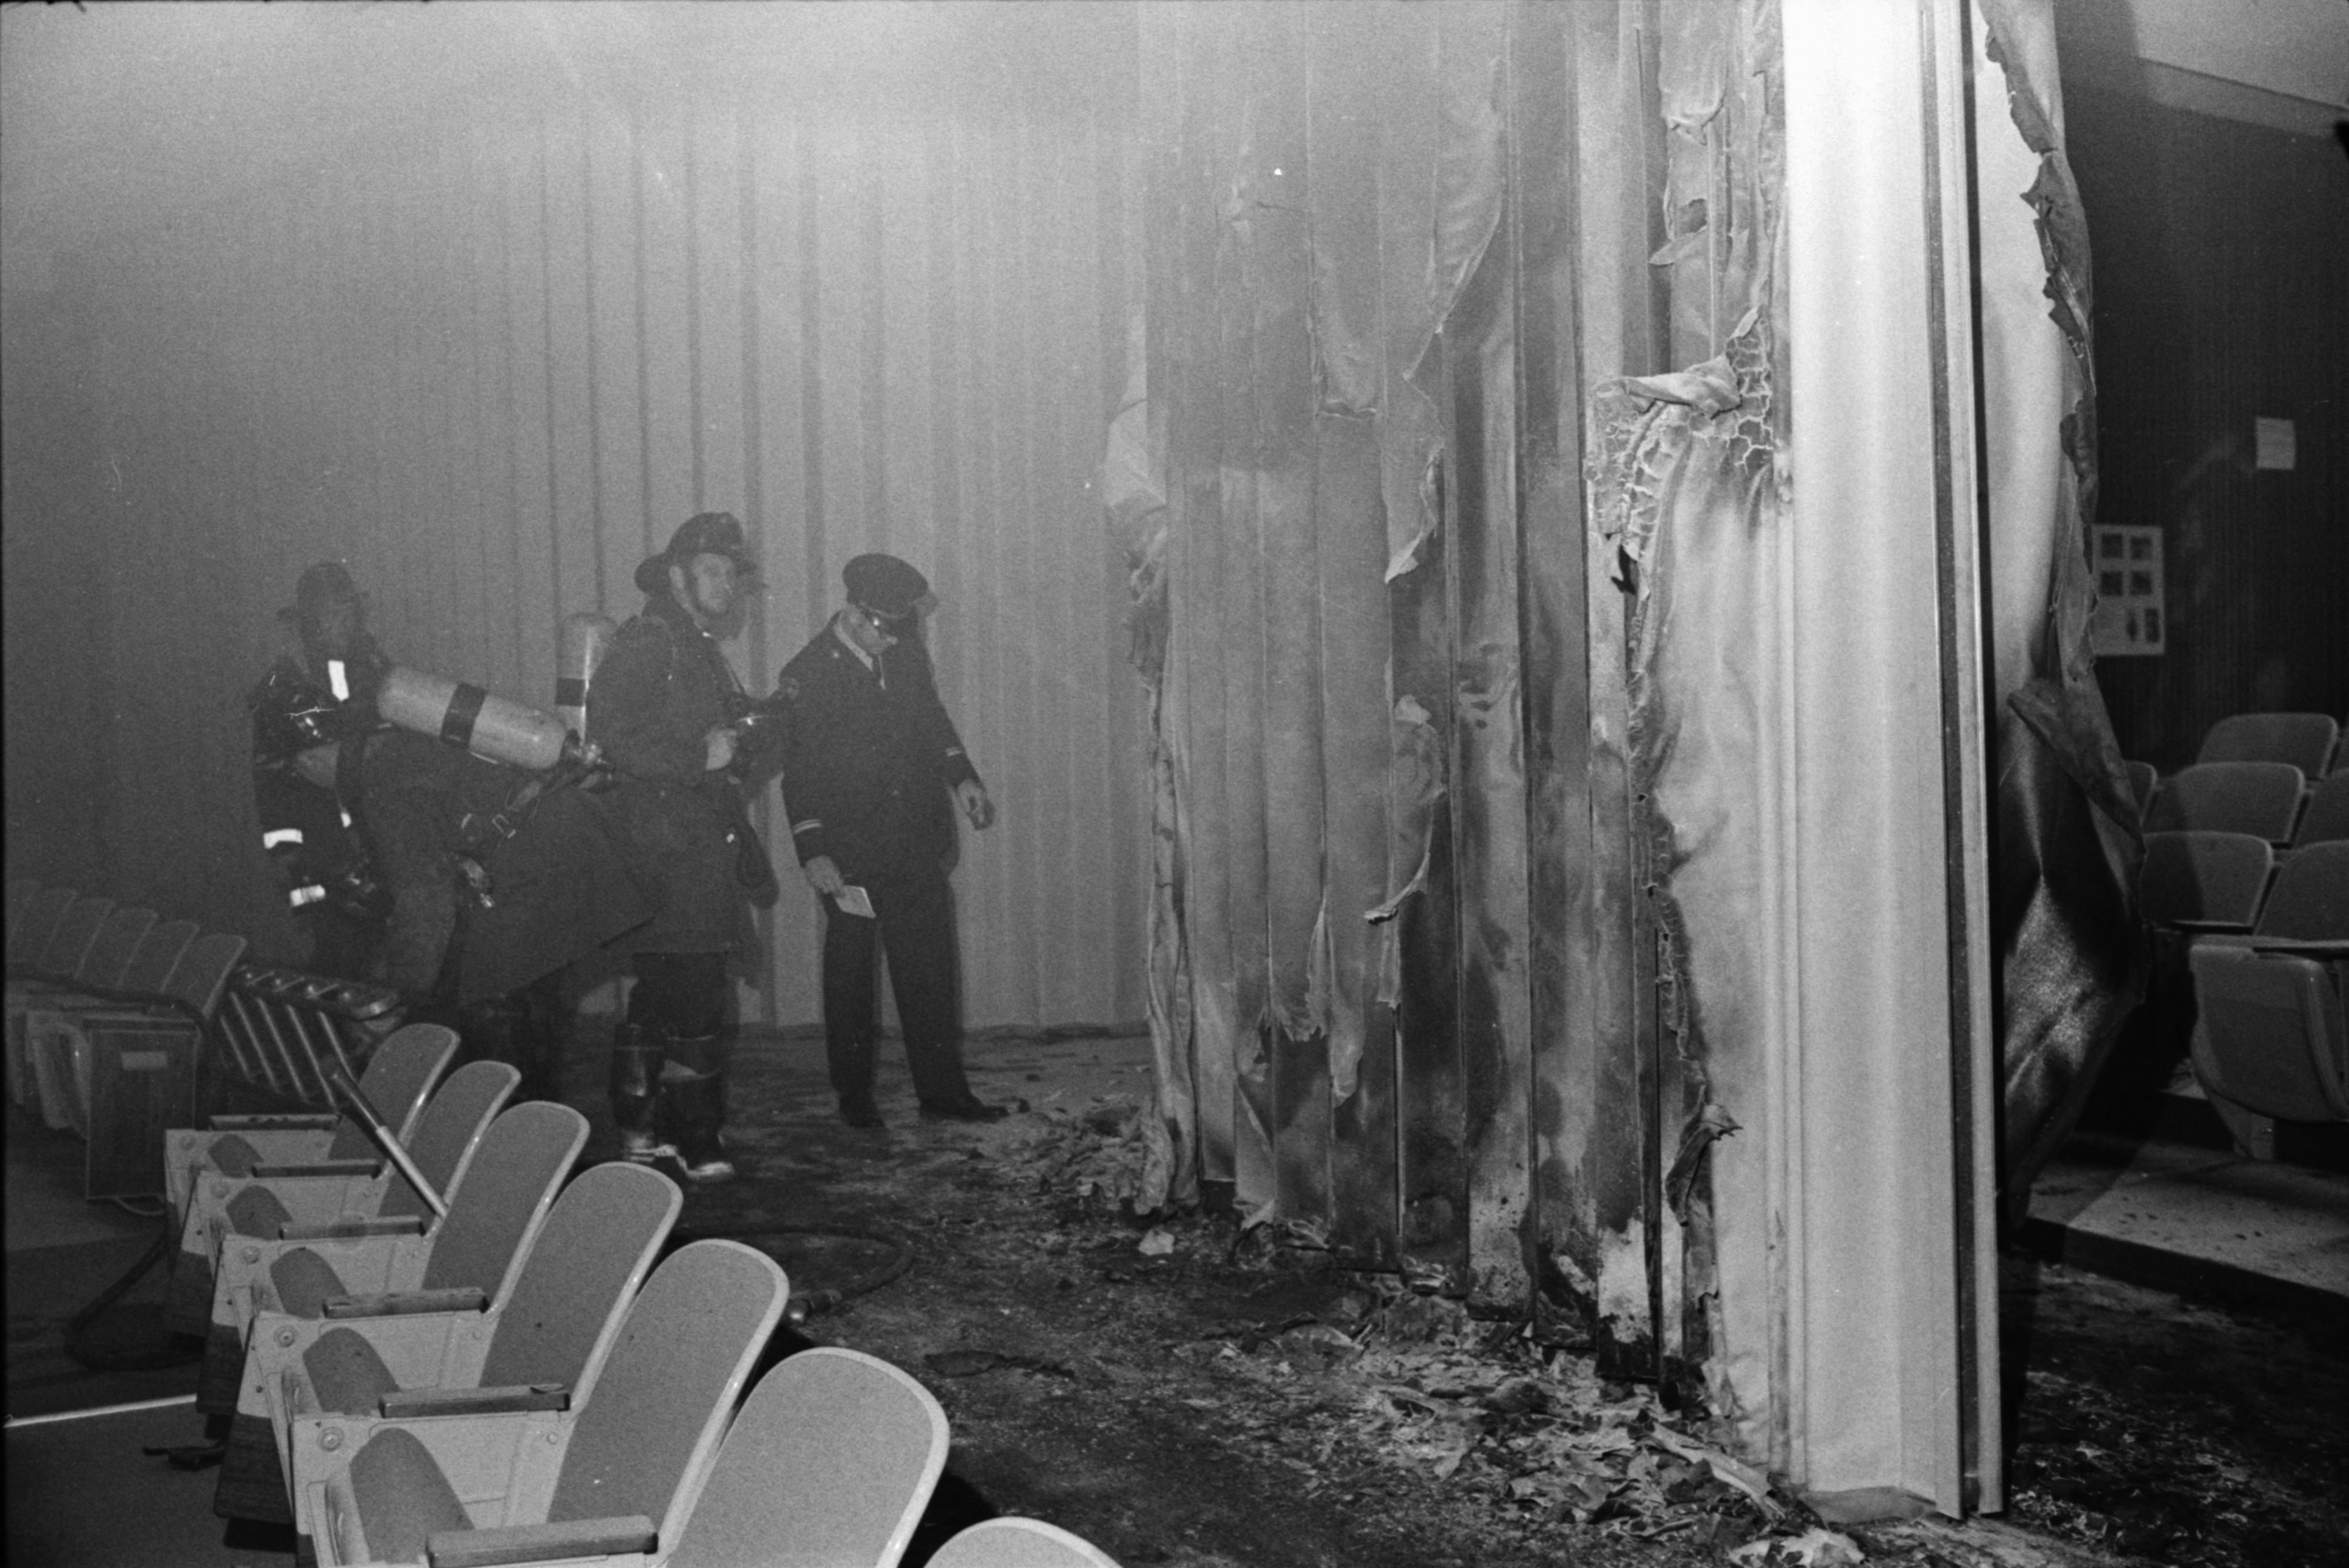 Arson Fire in Auditorium at Huron High School, November 1972 image